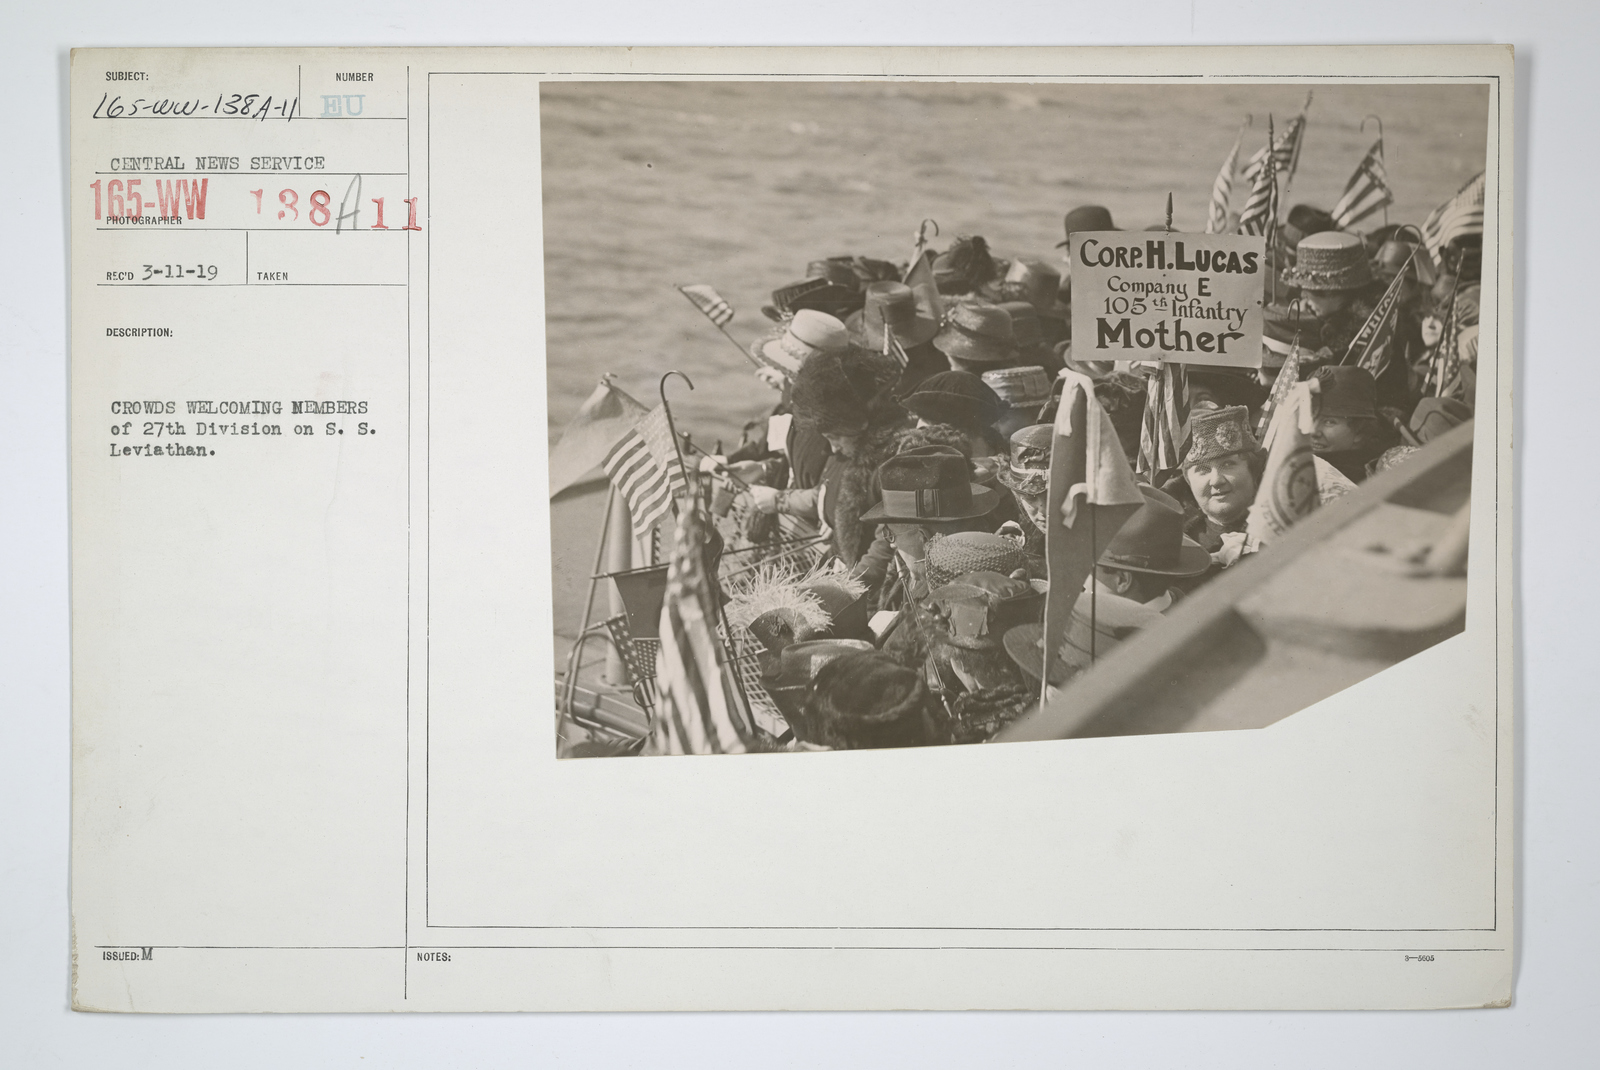 Demobilization - Miscellaneous - Crowds welcoming members of 27th Division on S.S. Leviathan